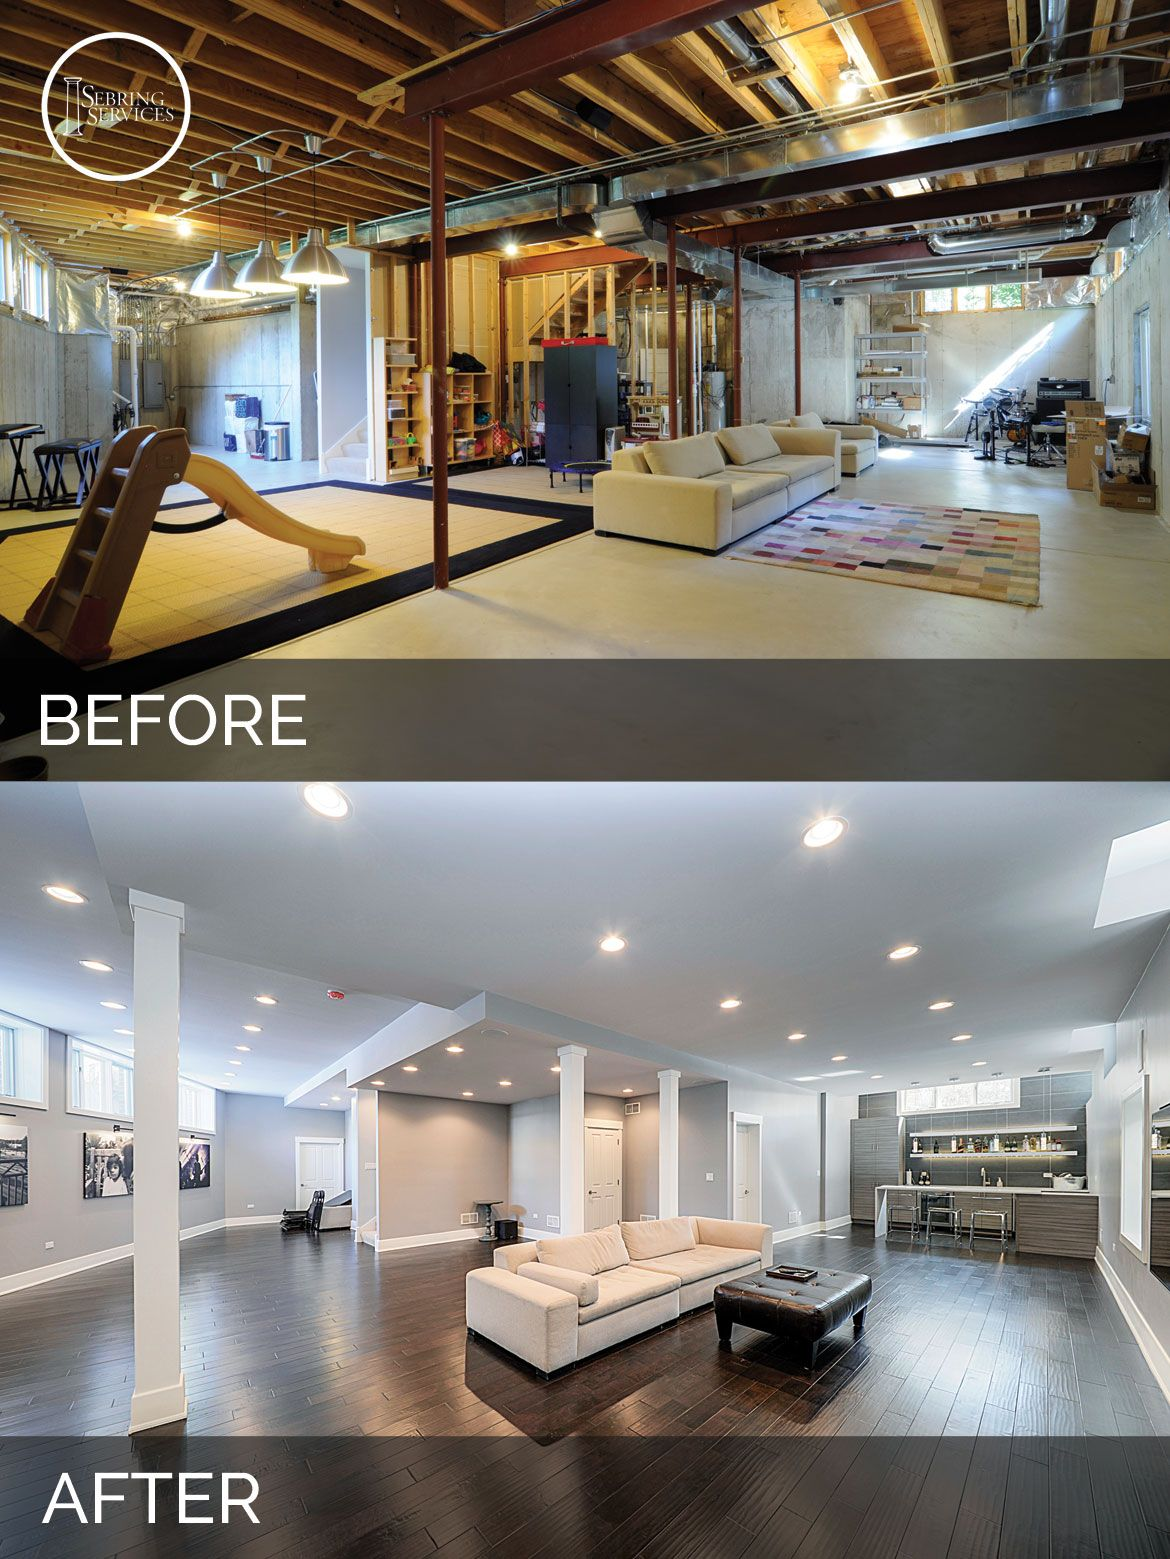 Elegant Before And After Basement Remodeling   Sebring Services